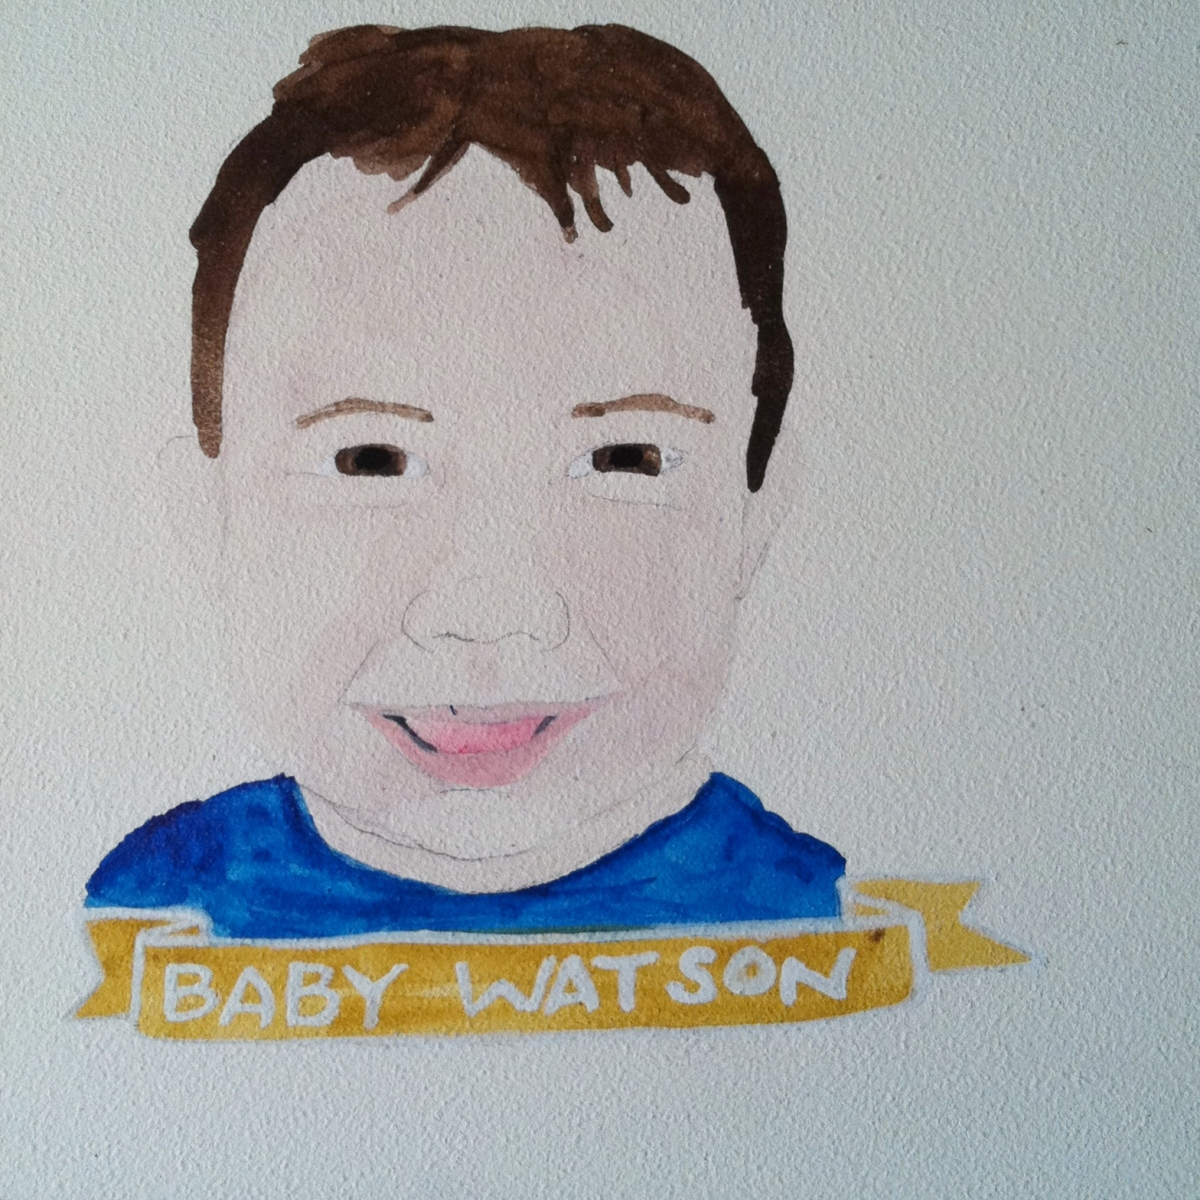 Talent Loves Company at Barbara Archer Gallery: 365 portraits by Lydia Walls - Baby Watson